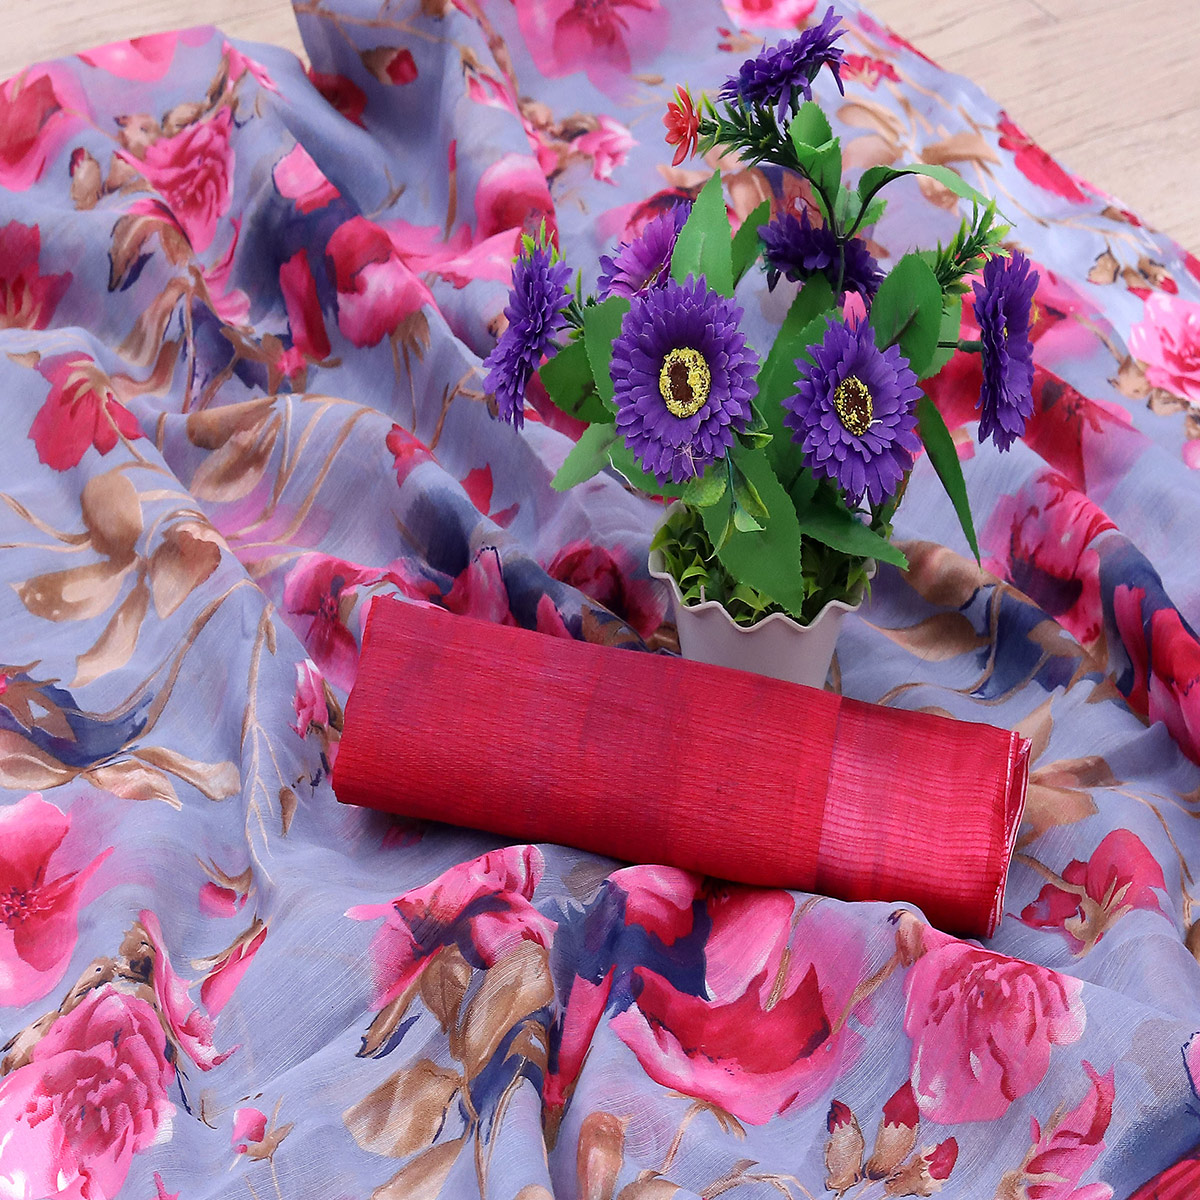 Charming Lavendar Colored Casual Wear Floral Printed Cotton Blend Saree